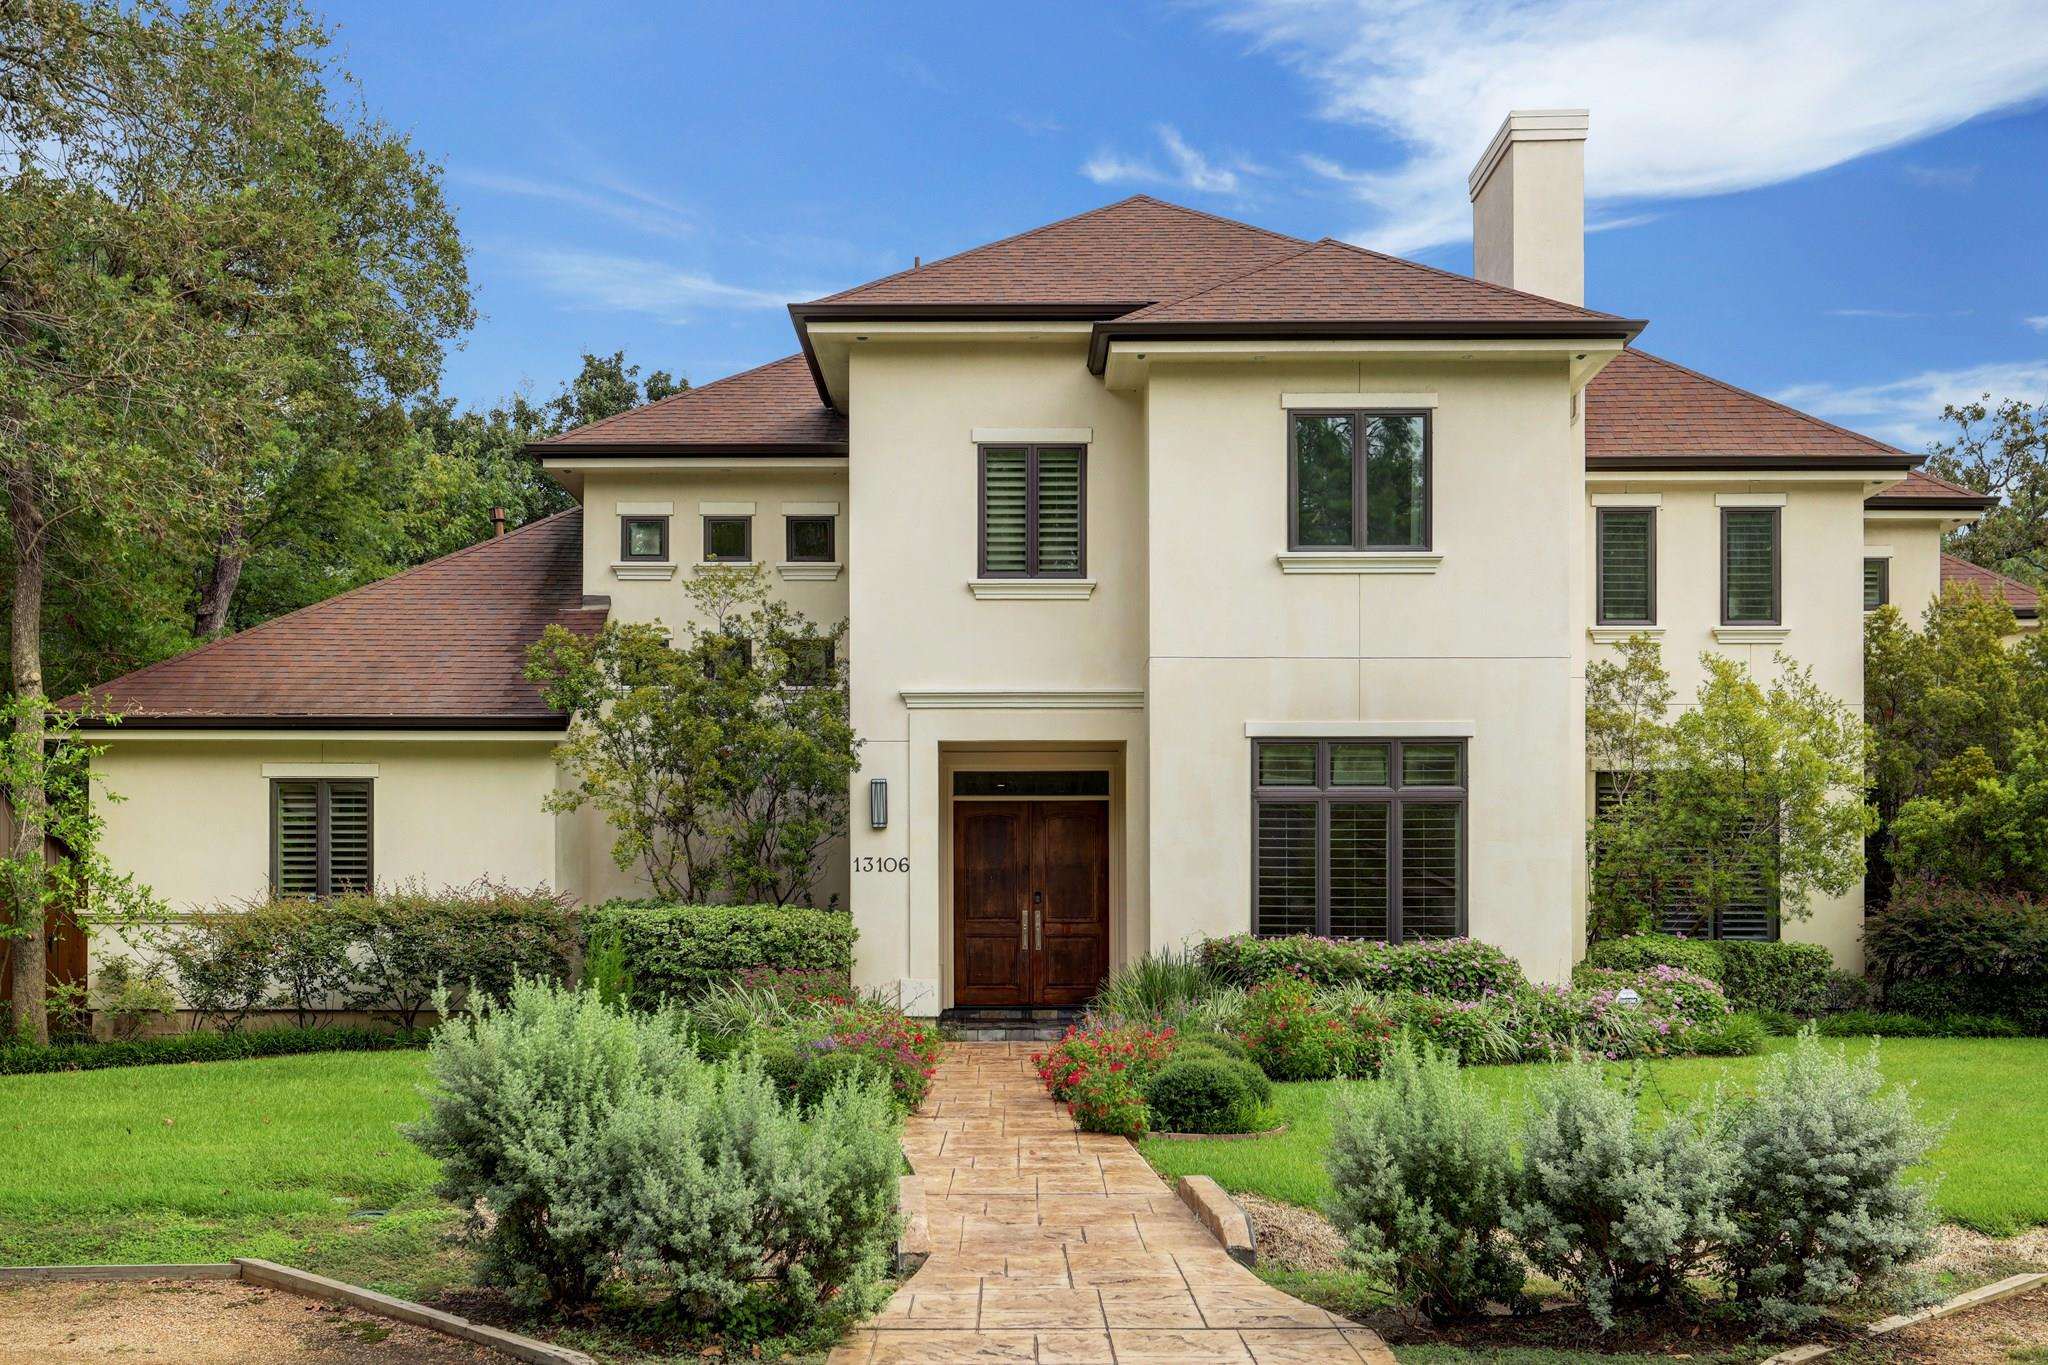 13106 Boheme Drive Property Photo - Houston, TX real estate listing